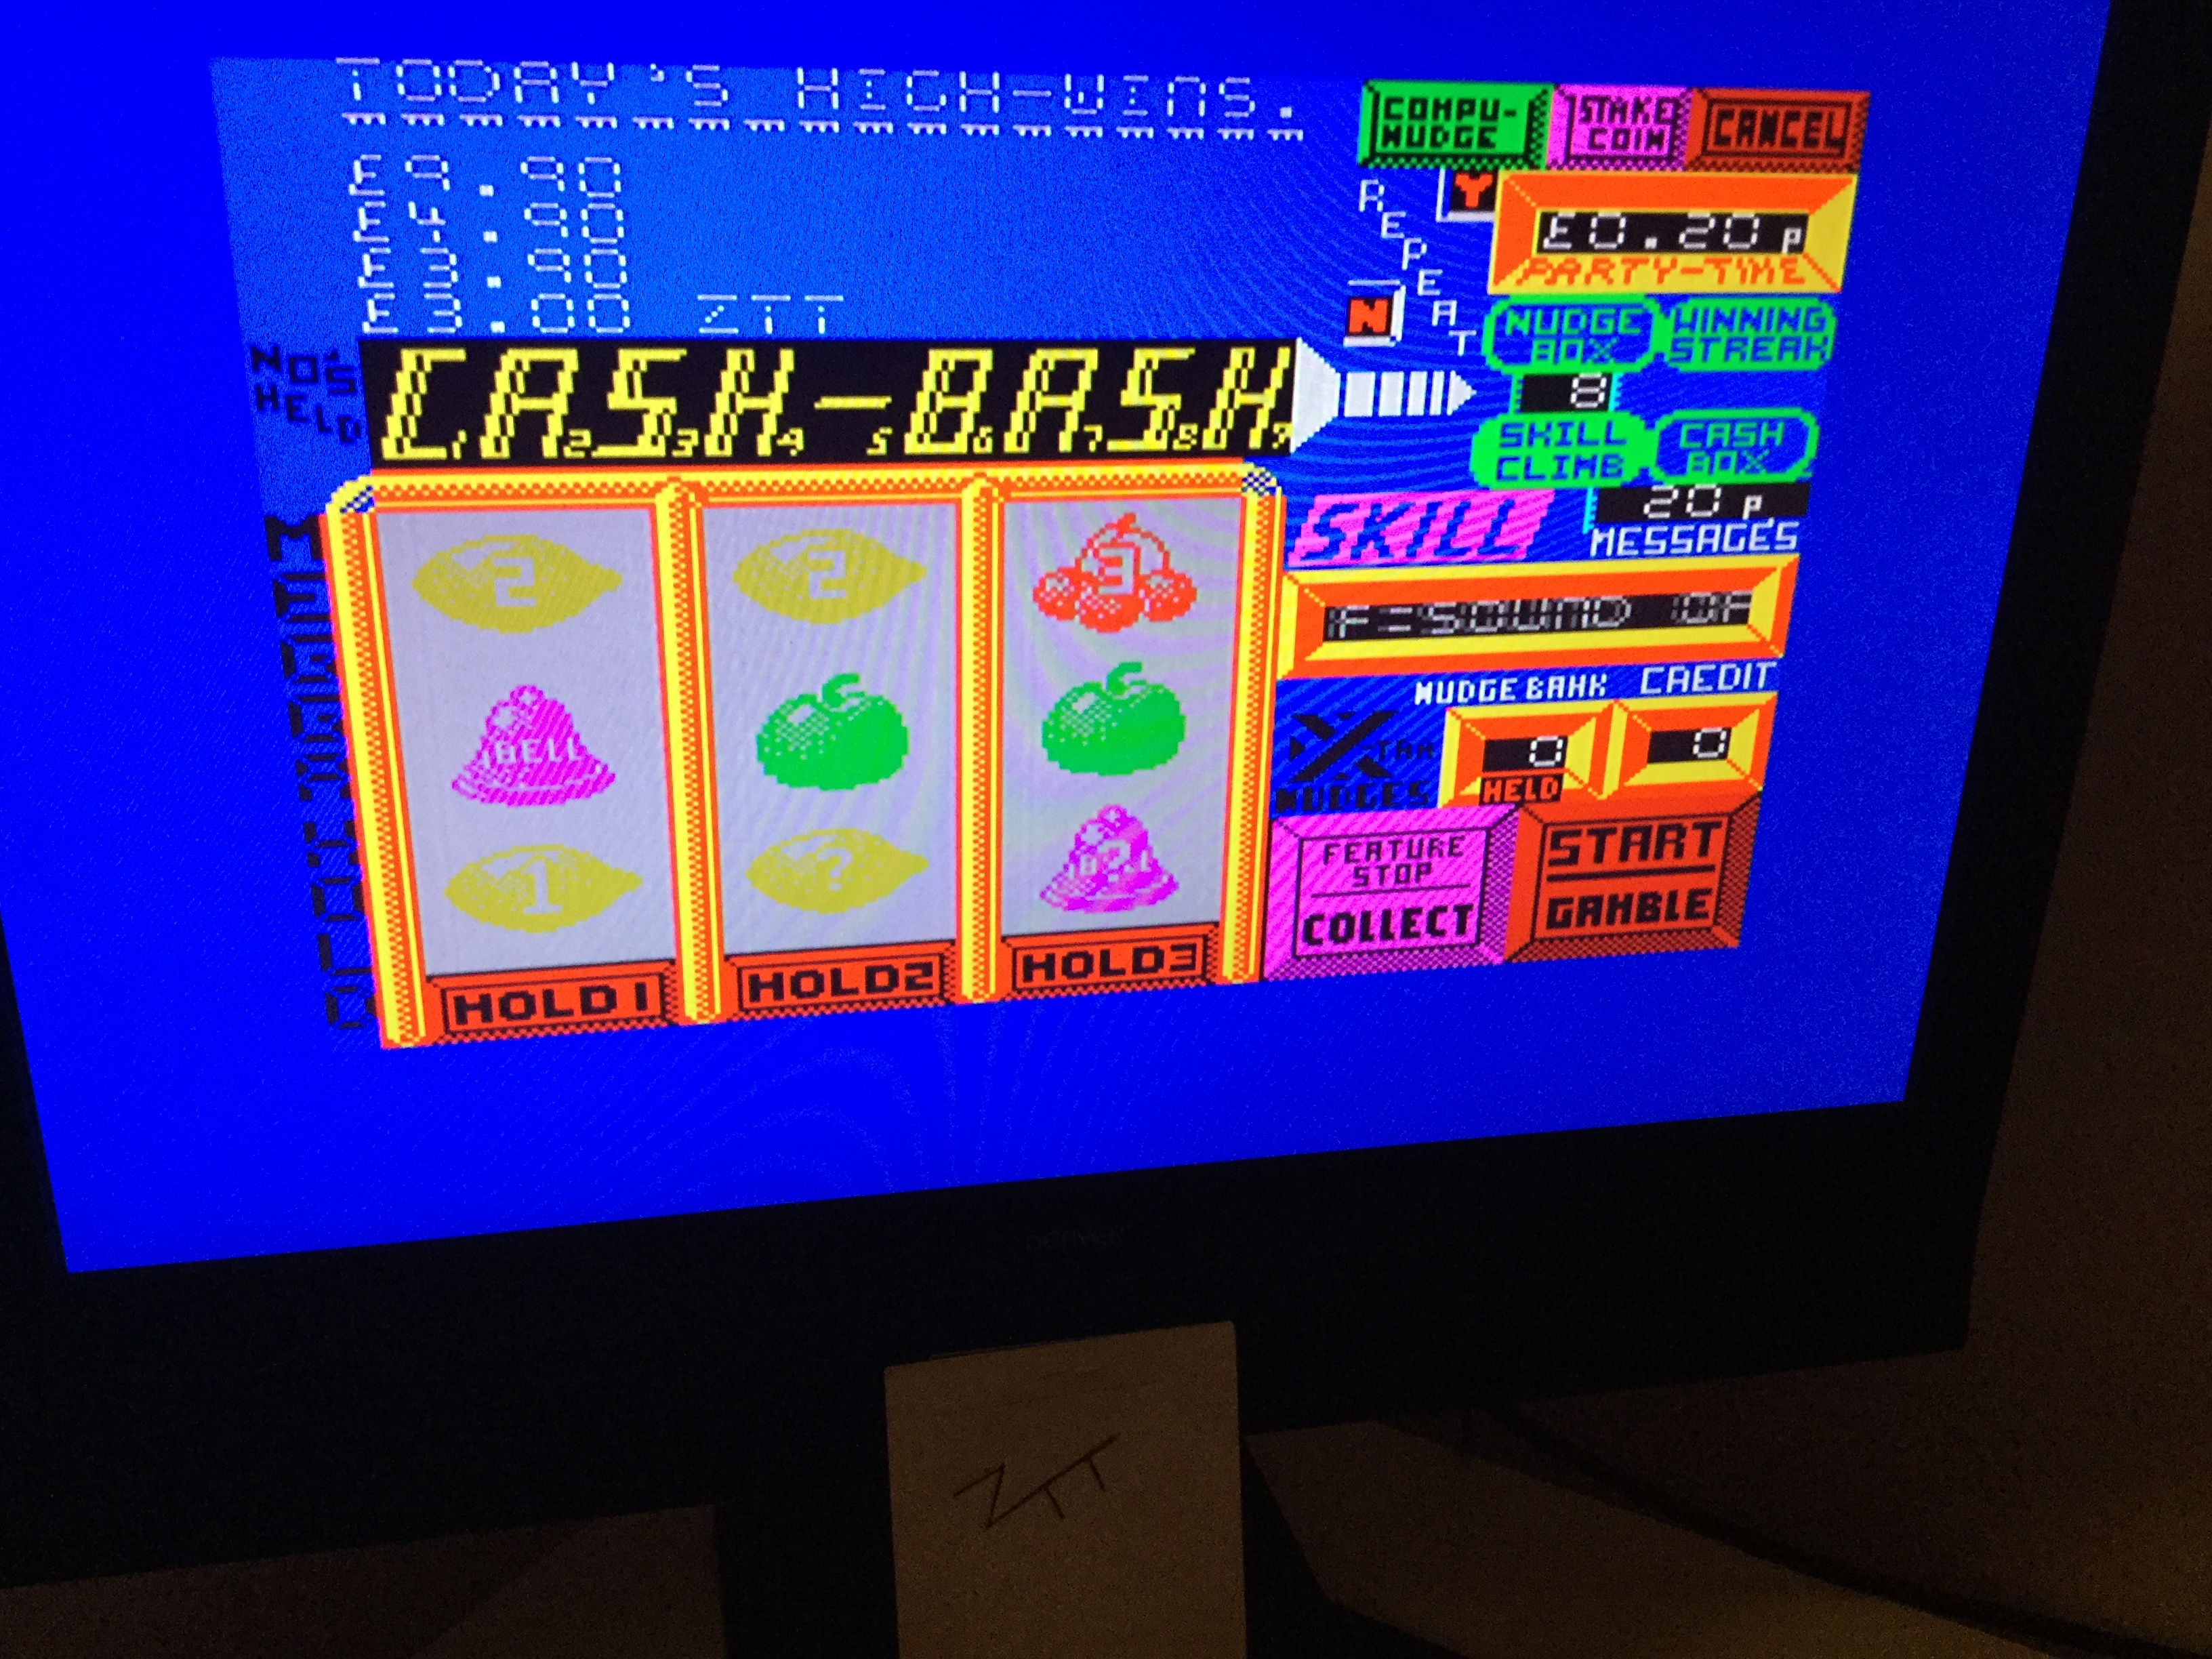 Frankie: Fruit Machine Simulator 1 [Score = Walk Away] [Money * 100] (ZX Spectrum) 300 points on 2019-12-23 03:48:07